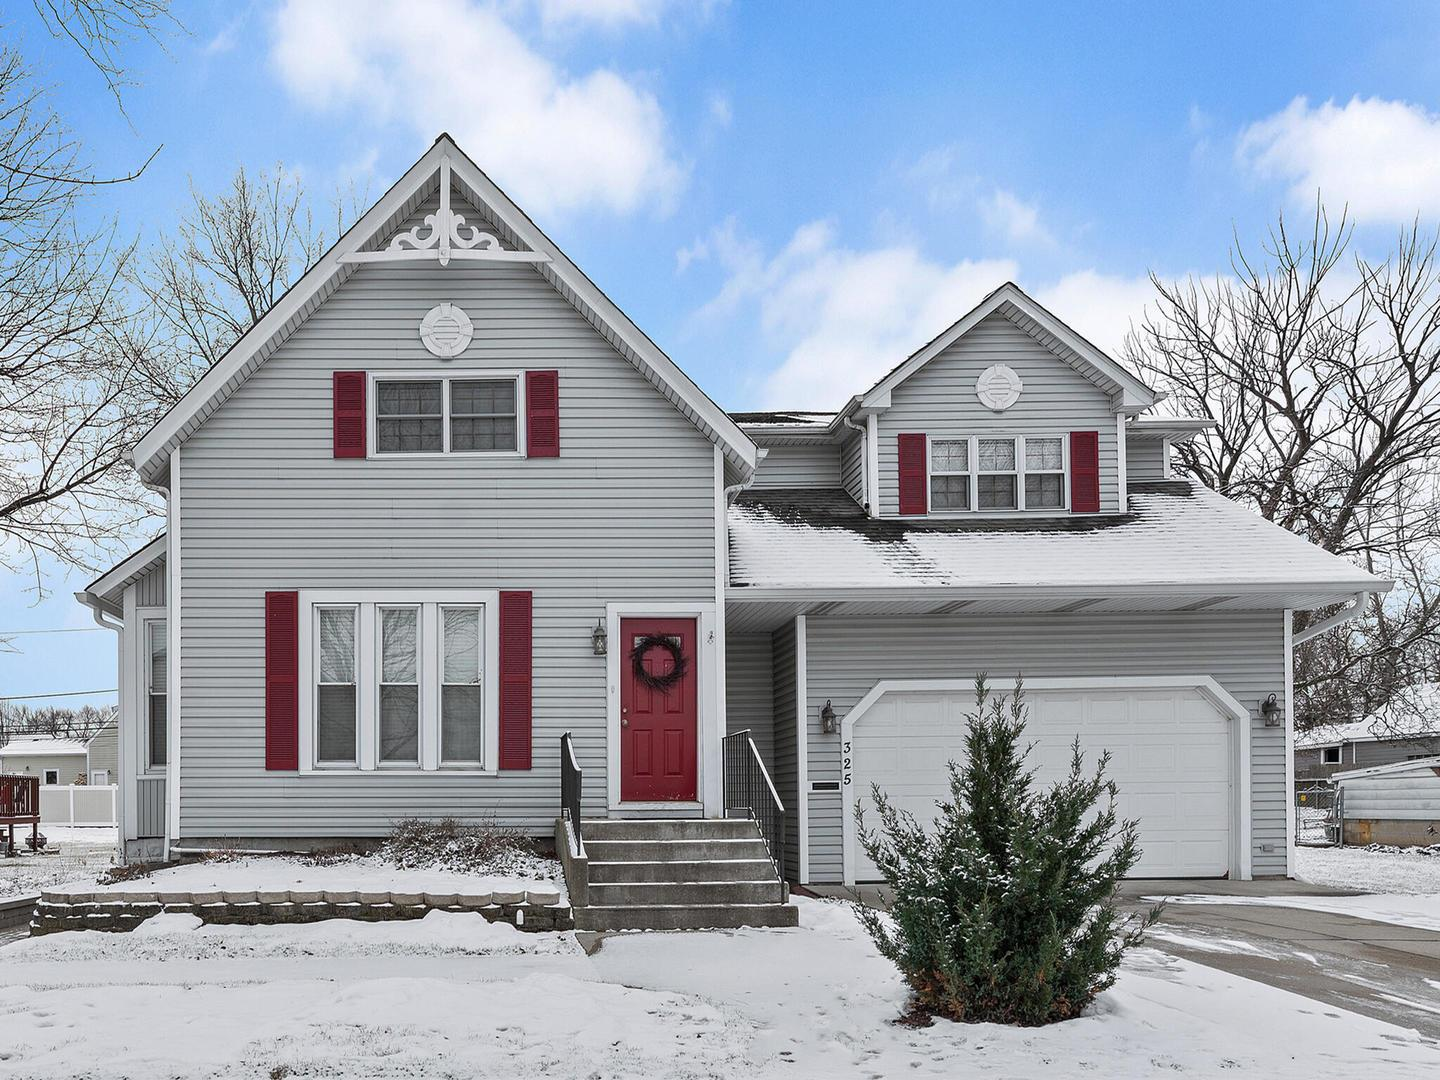 325 2nd Street, Downers Grove, IL 60515 - #: 11007558